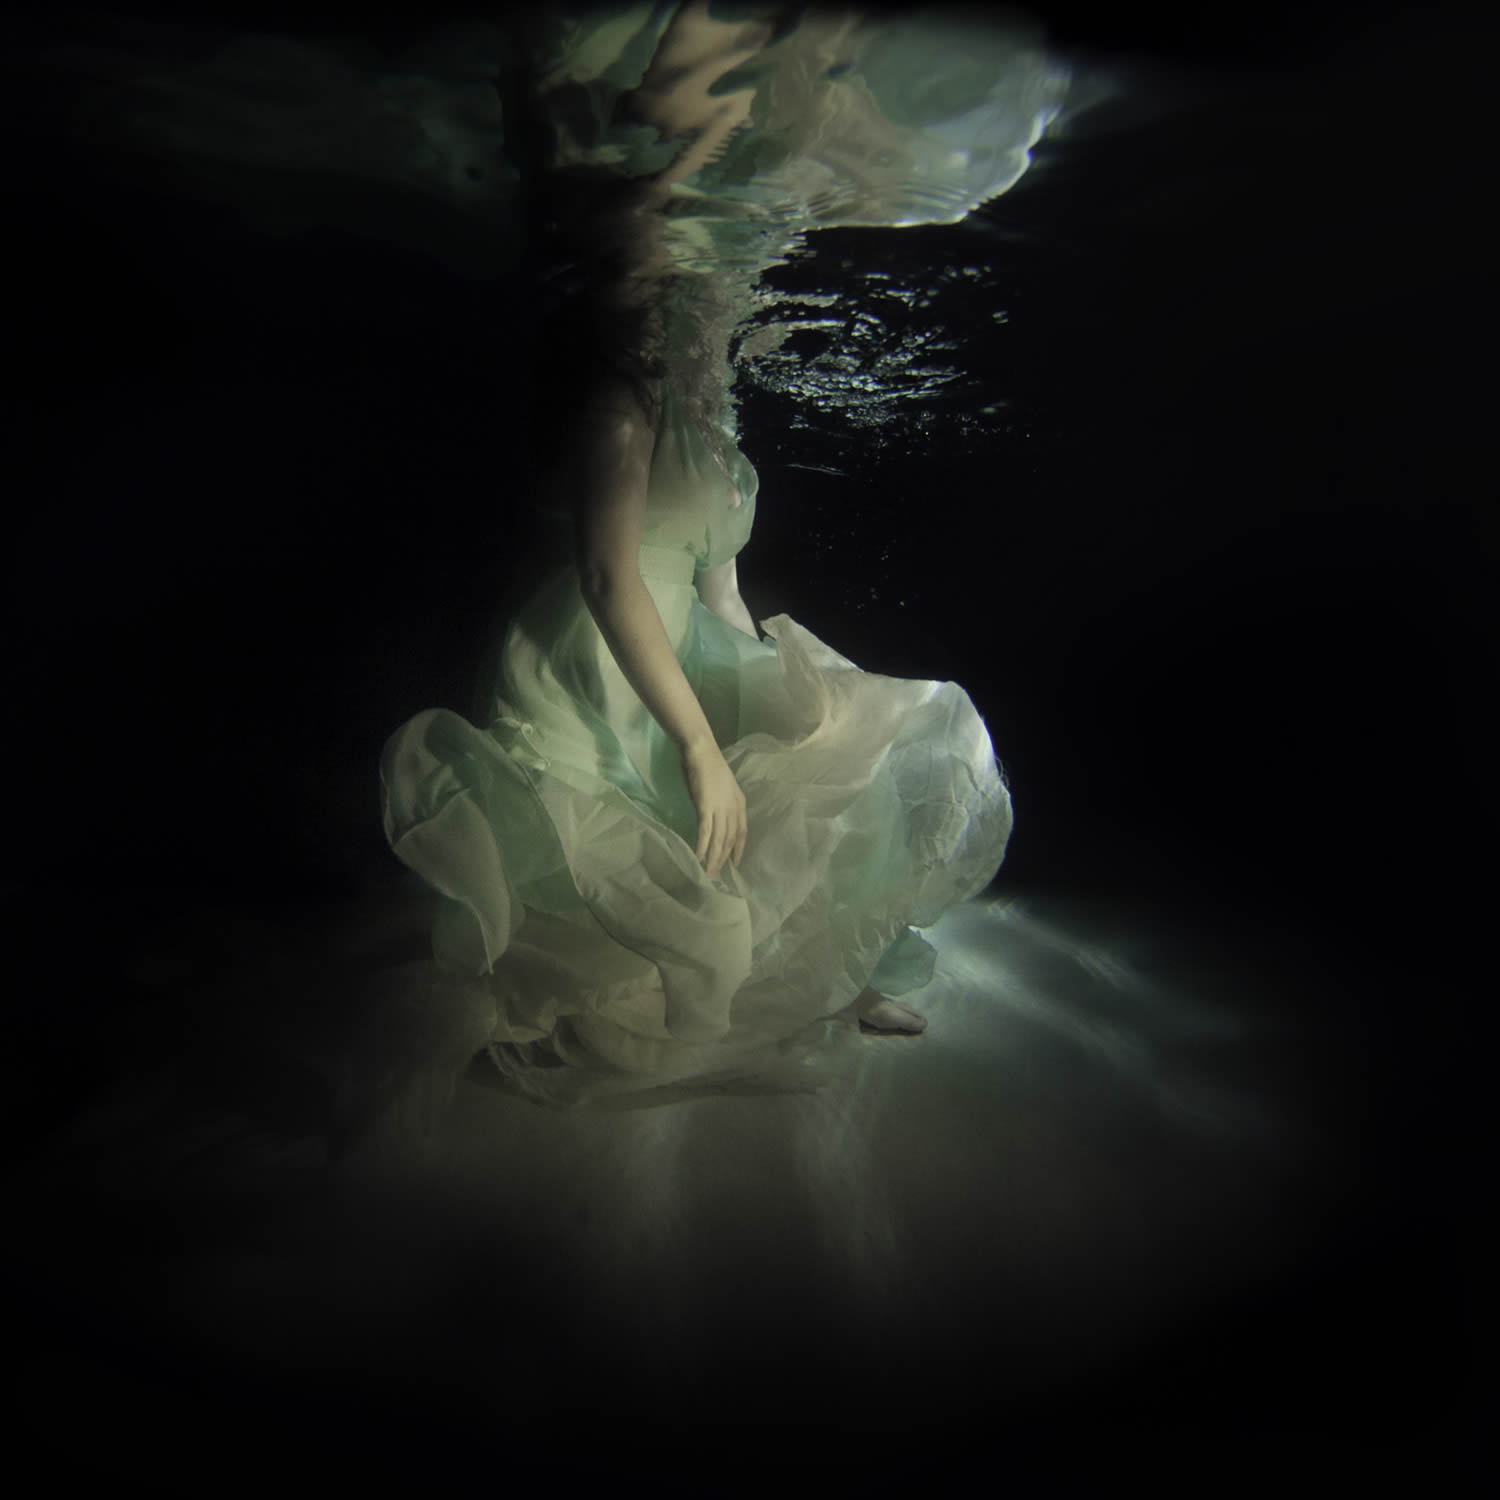 woman in green dress underwater, photo by jenna martin